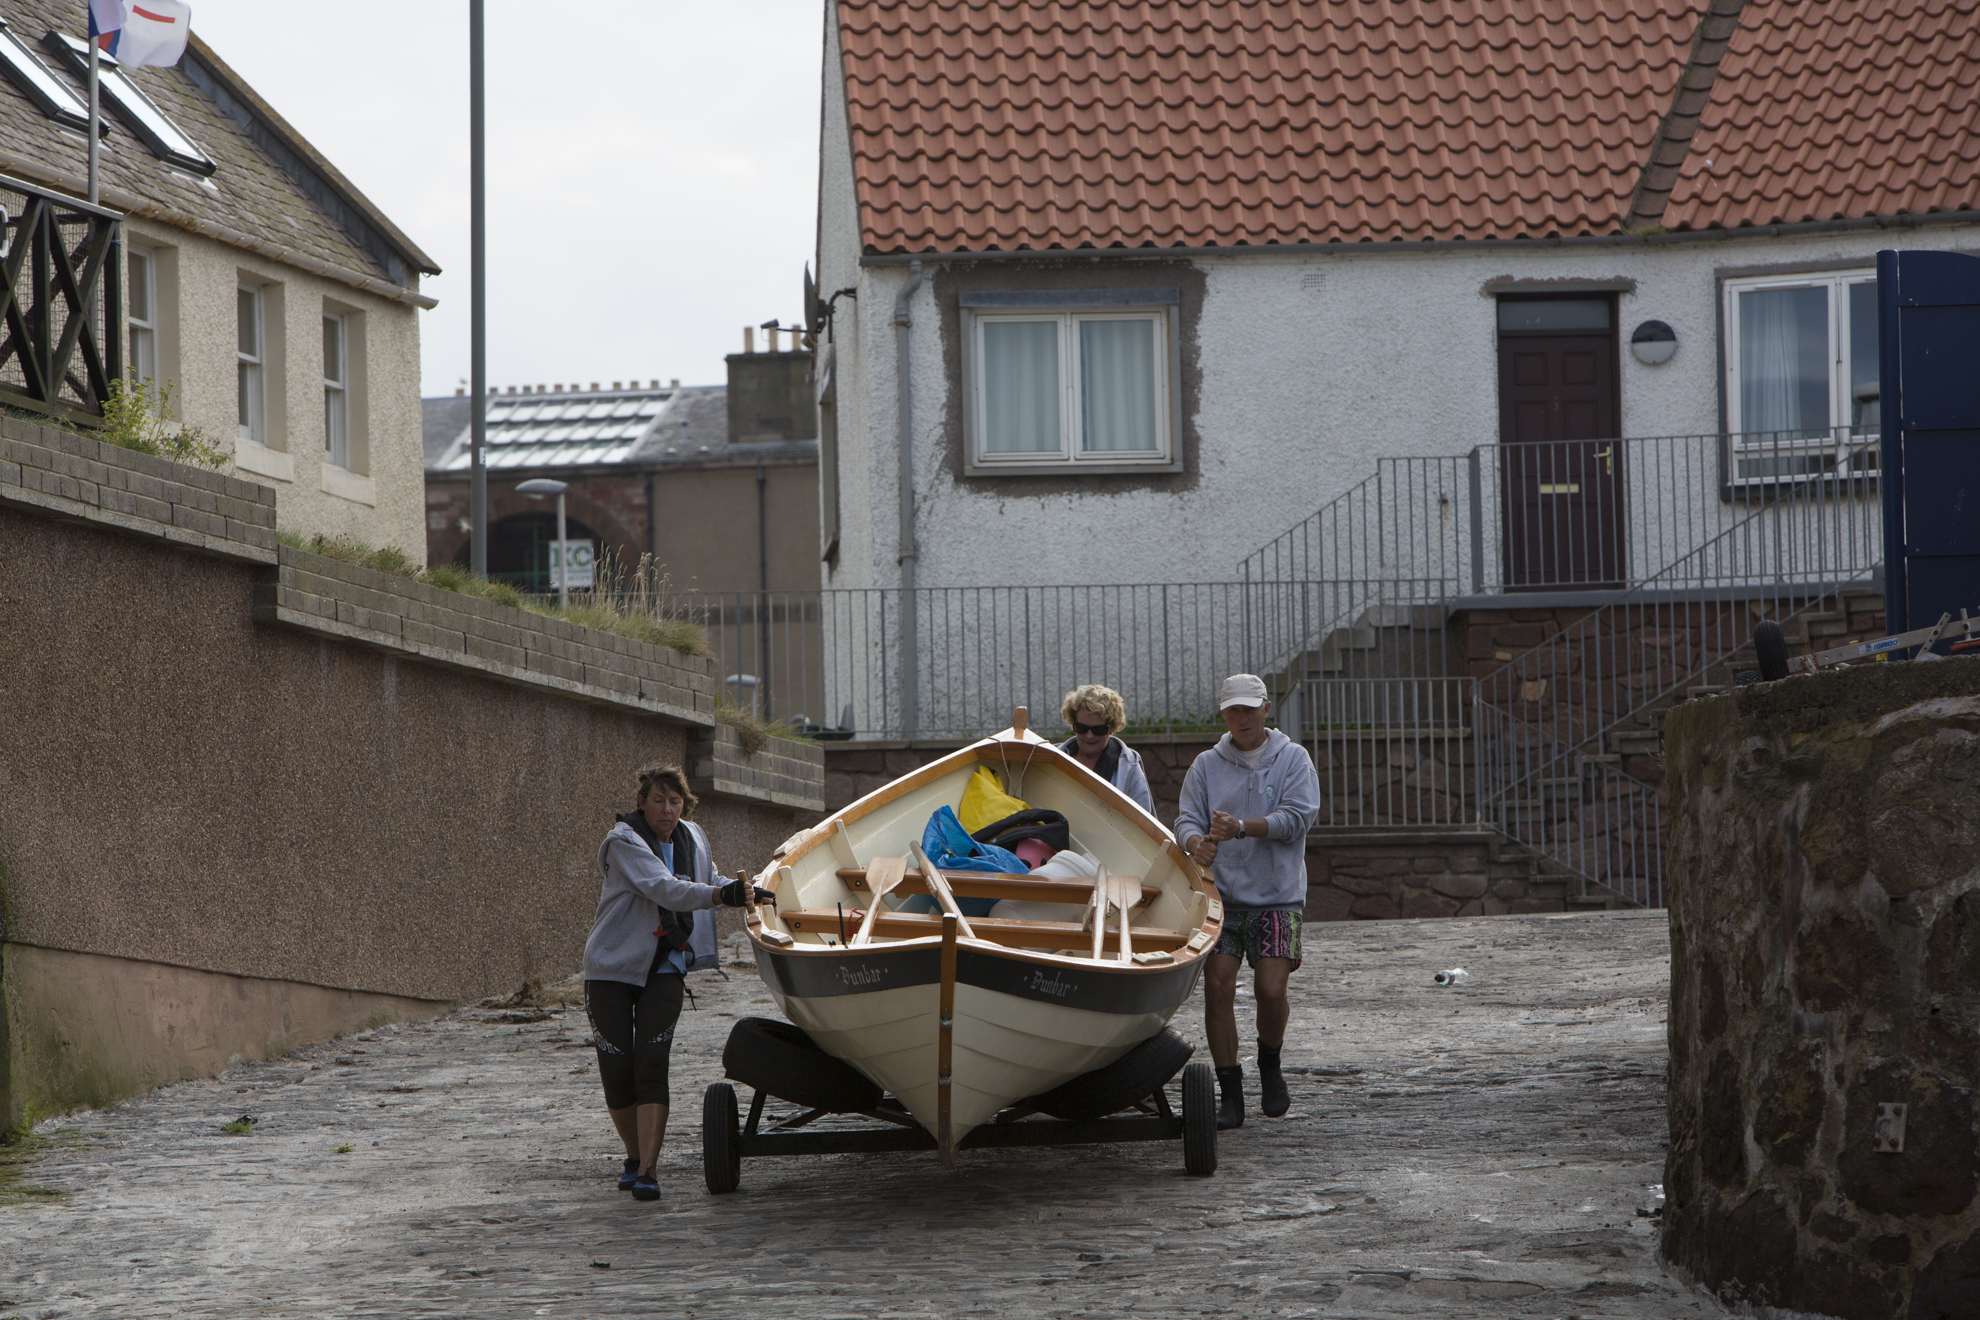 """From left, Diana Mackie, Pamela Maule and Kenny Maule wheel the """"Black Agnes"""" out to the water in Dunbar, Scotland."""